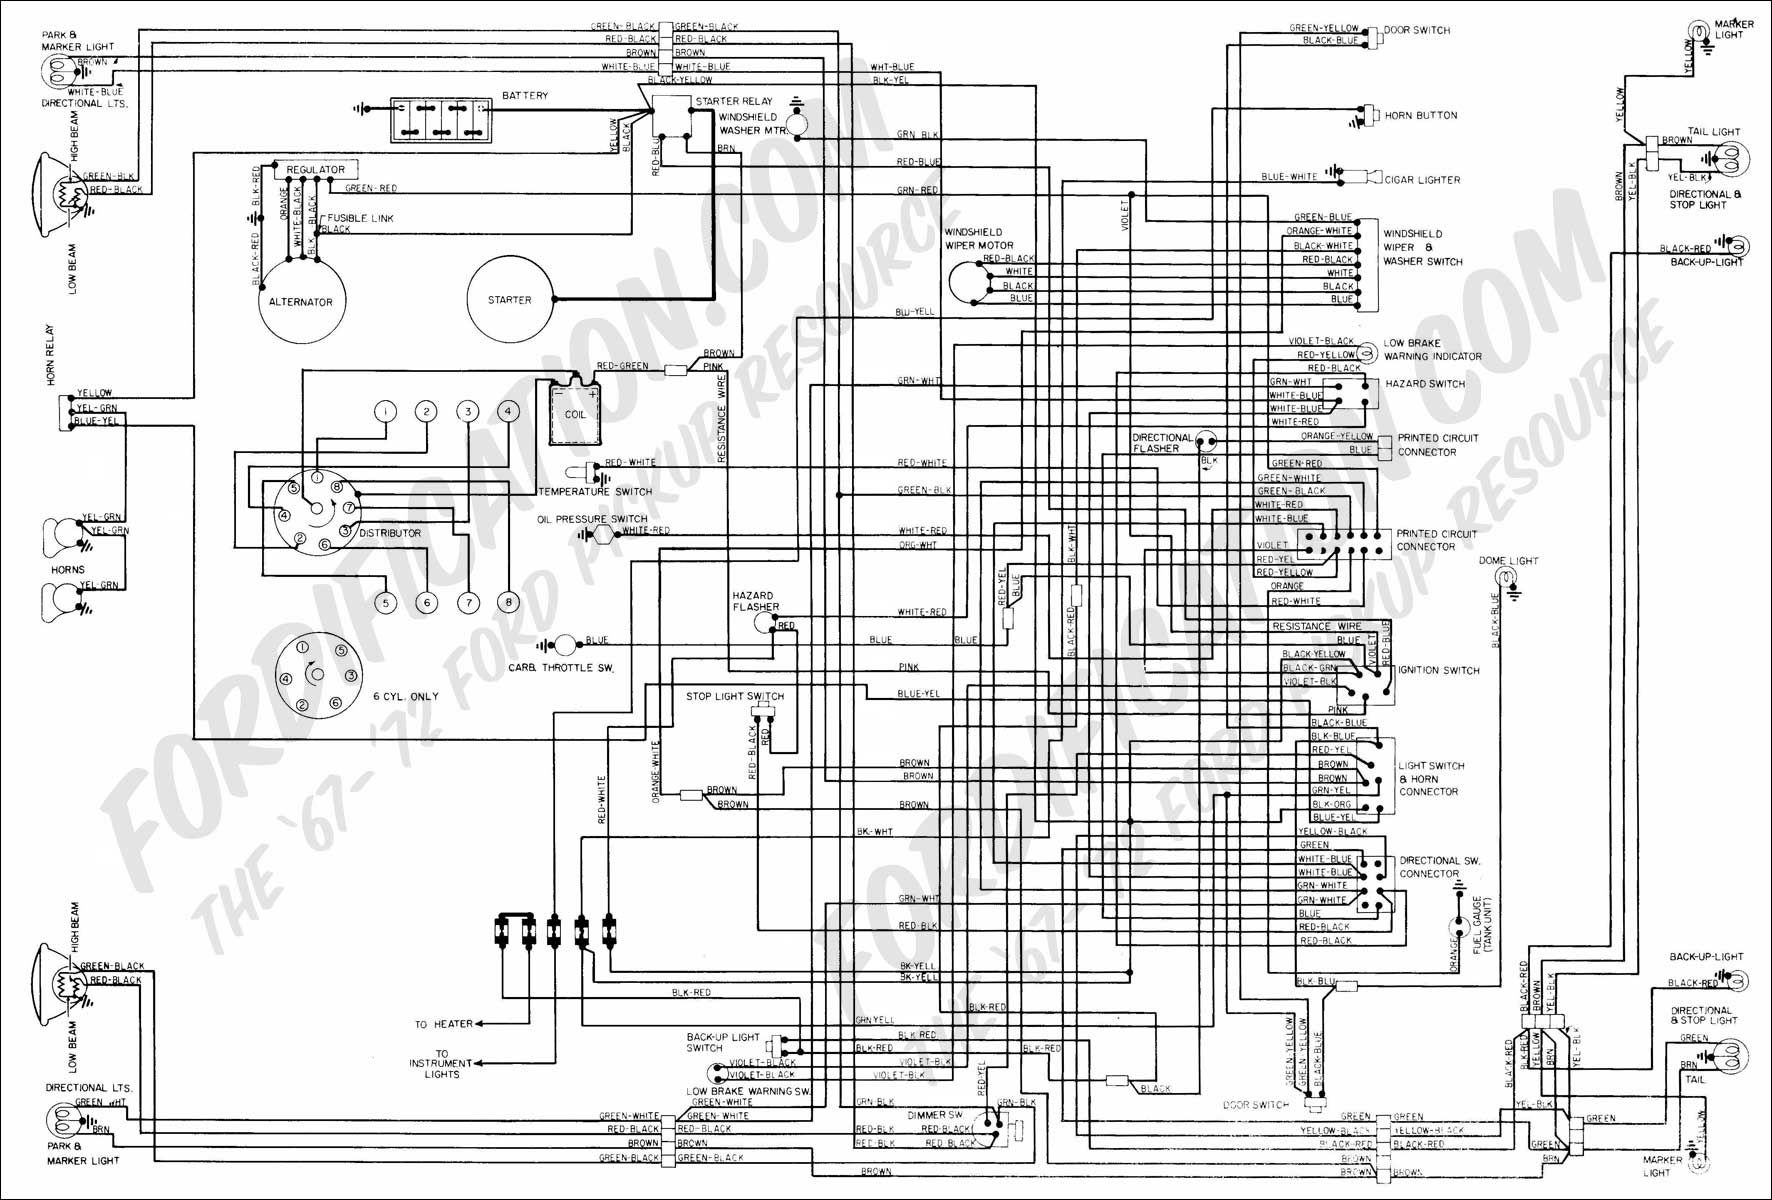 be873db495753211c2fc9a563f039b29 solenoid 1971 f250 1971 ford f100 wiring diagram www ford 1990 ford truck wiring diagram at gsmx.co